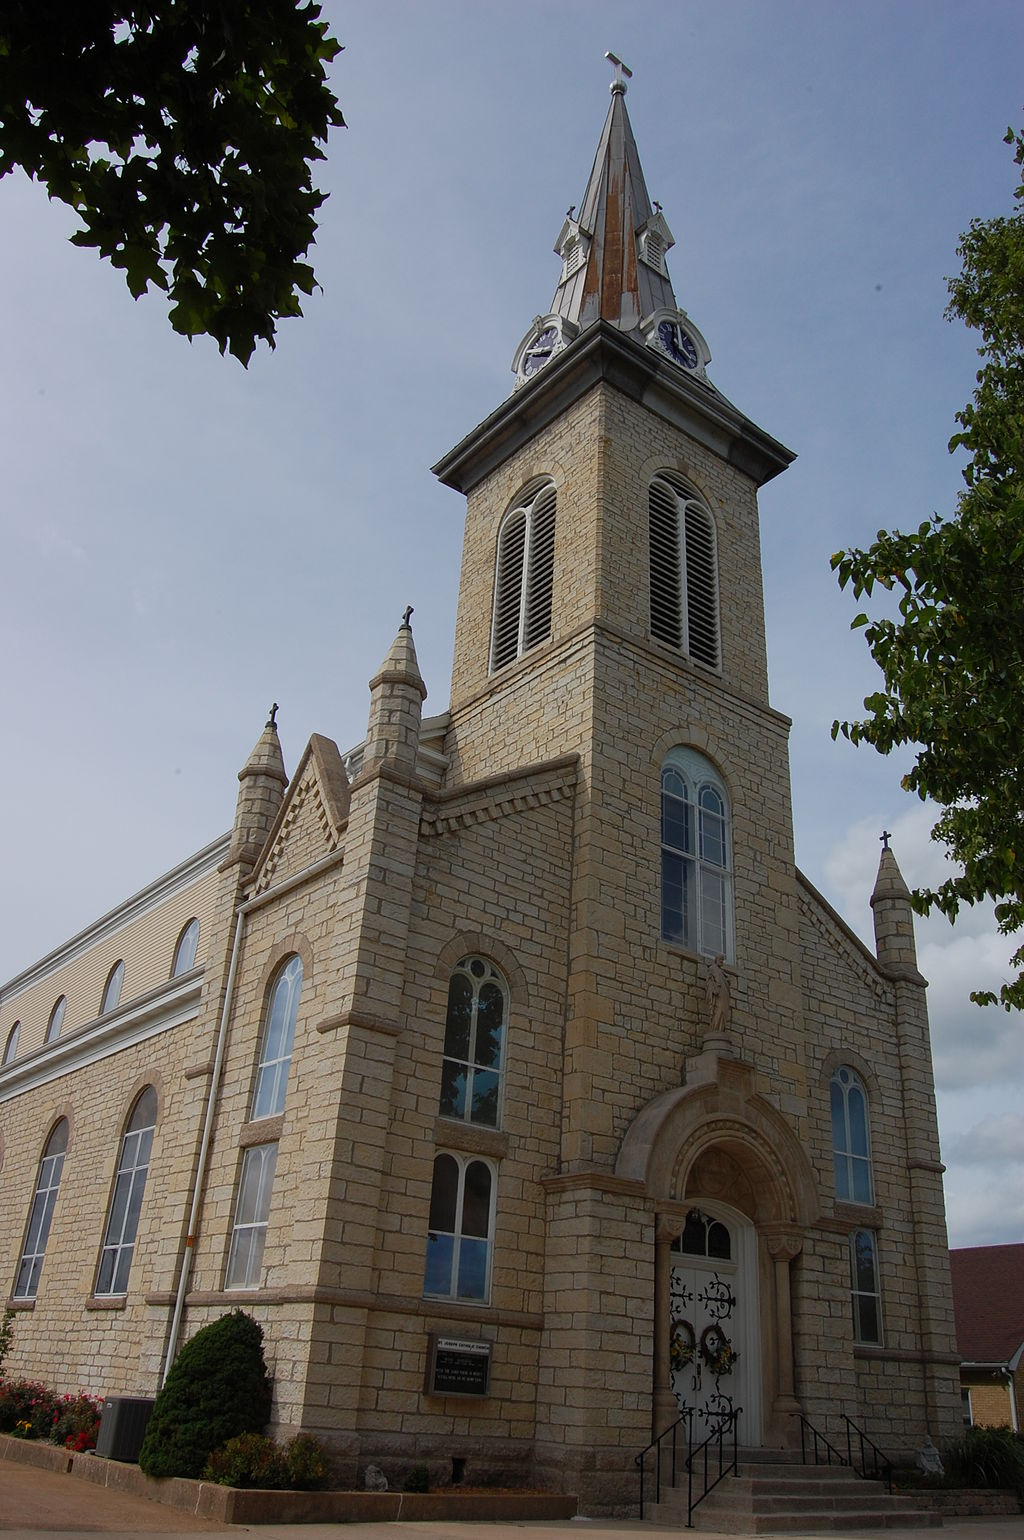 St. Joseph's Church was built in 1848.